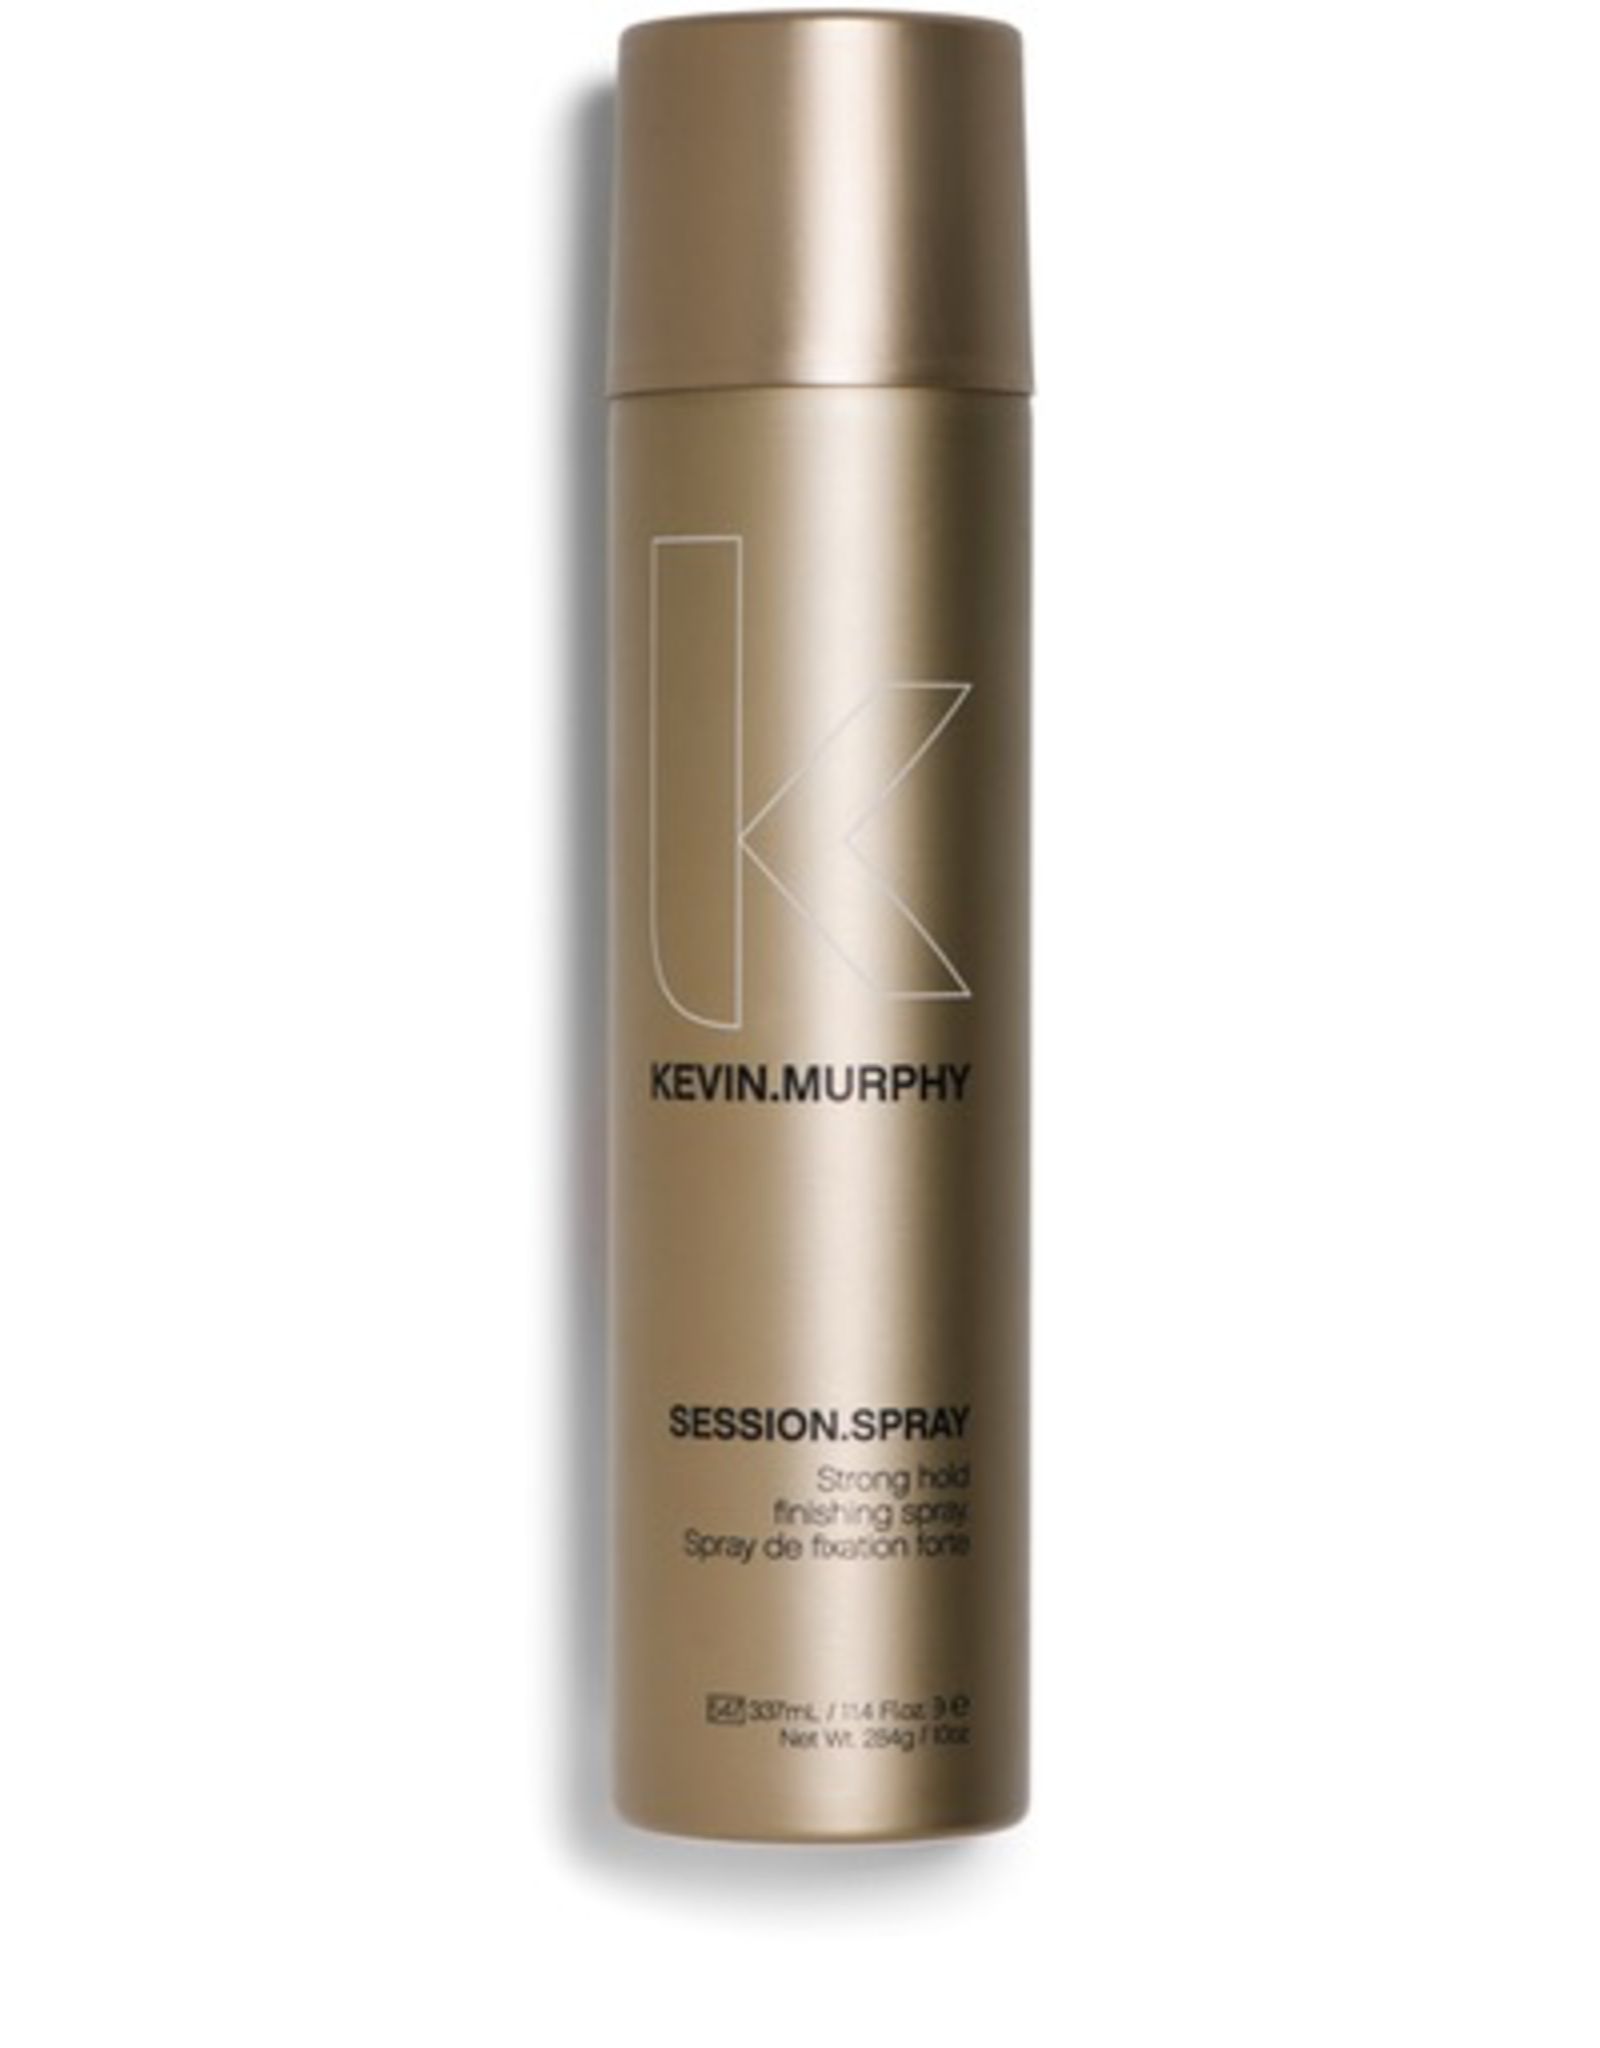 KEVIN.MURPHY Session.Spray (55 ml)